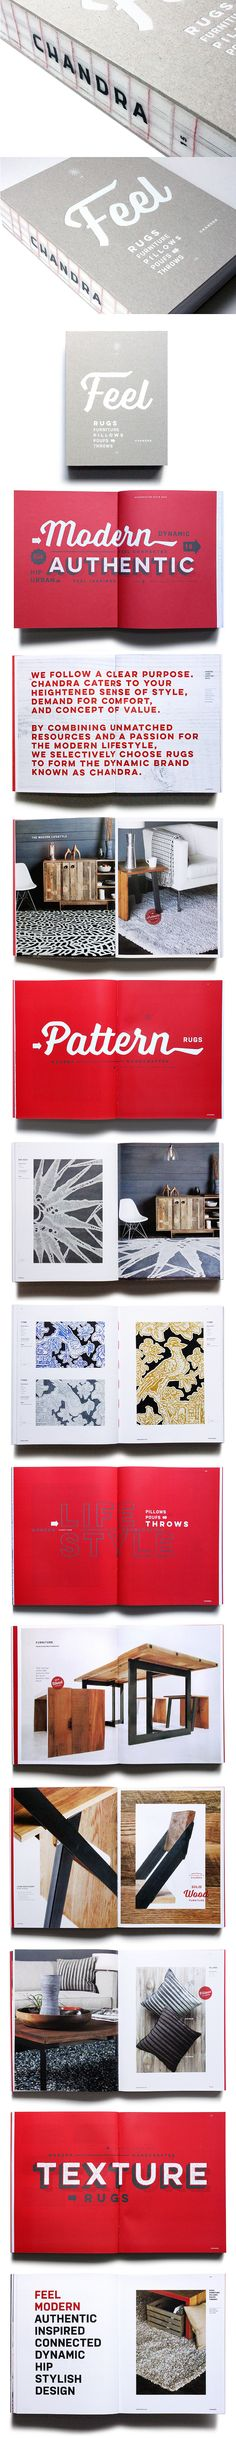 Chandra Rugs catalog by Ferreira Design Company